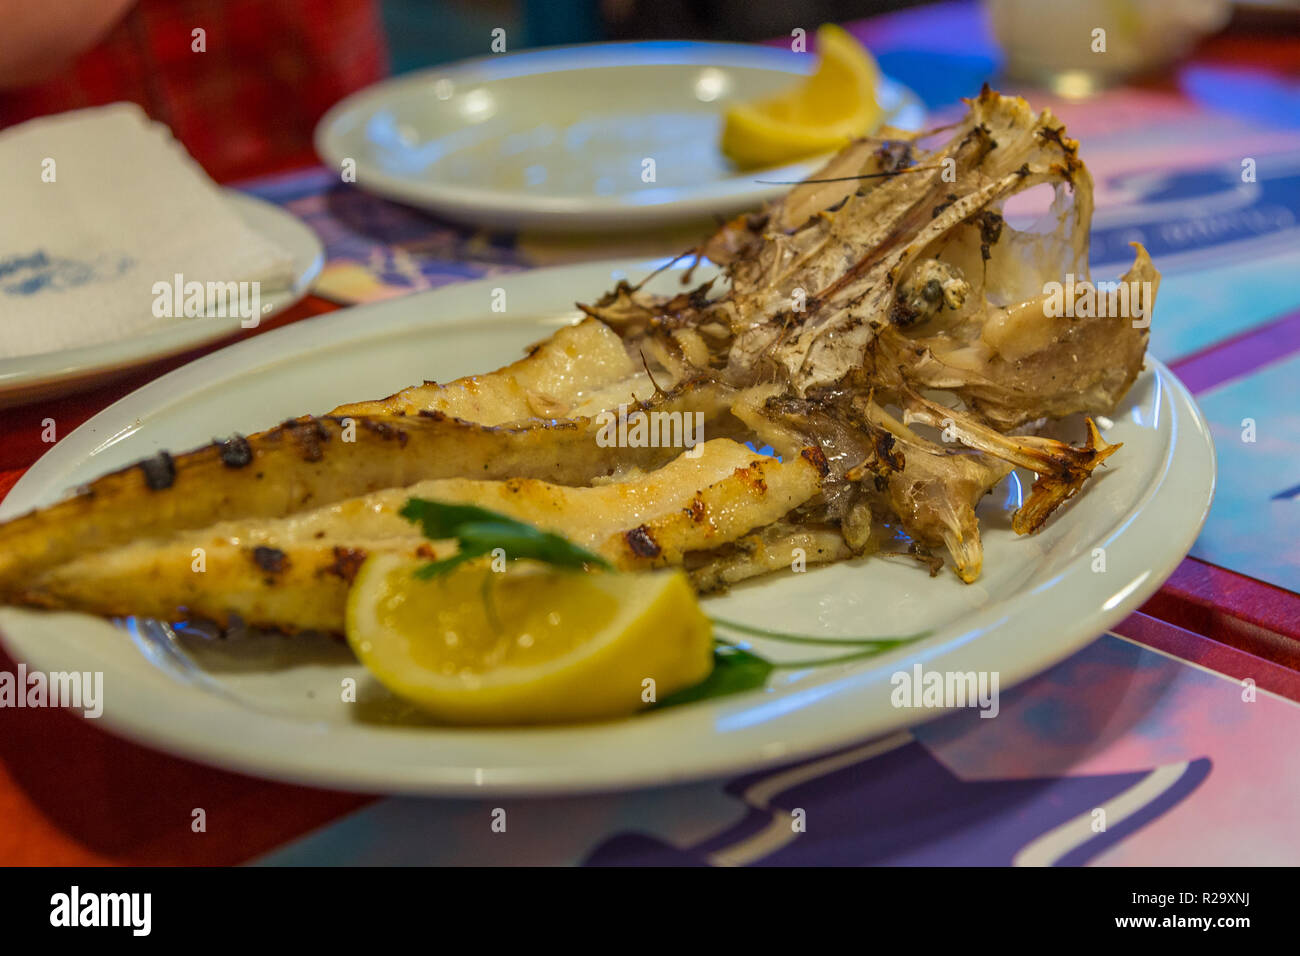 Grilled monkfish, sea fish, on a white plate with lemon. Restaurant in Tirana, Albania. - Stock Image